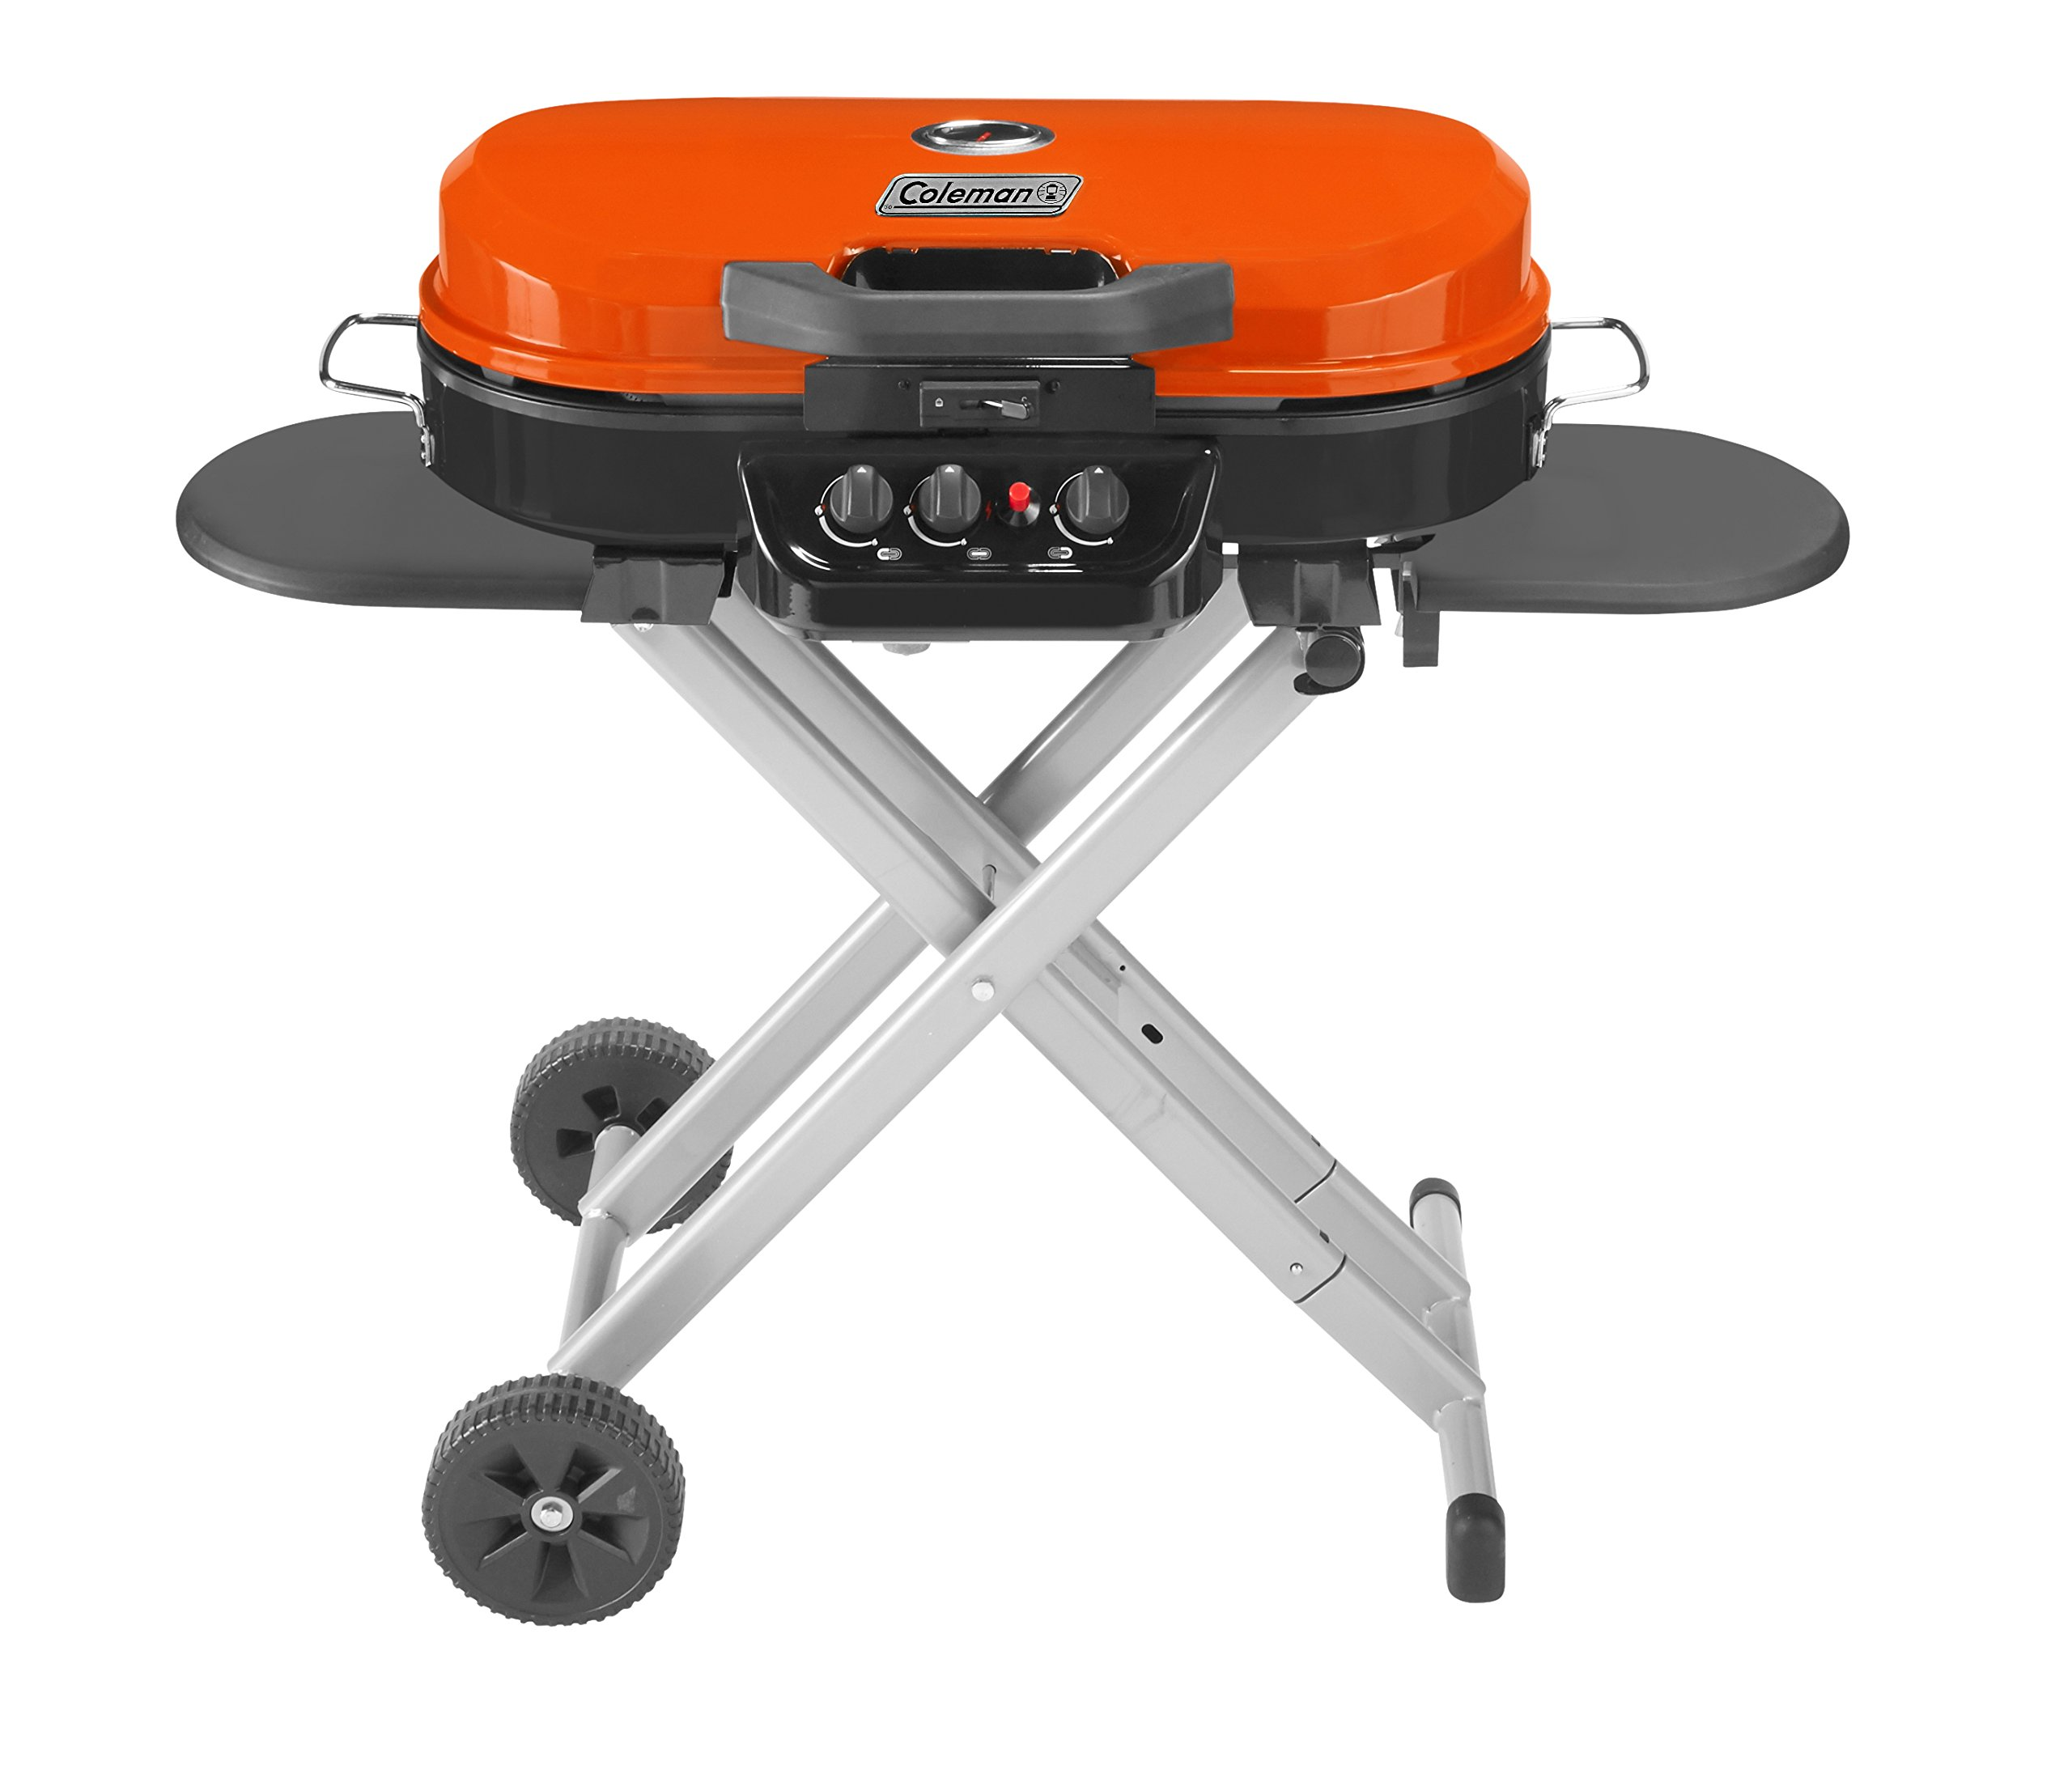 Coleman RoadTrip 285 Portable Stand-Up Propane Grill, Orange by Coleman